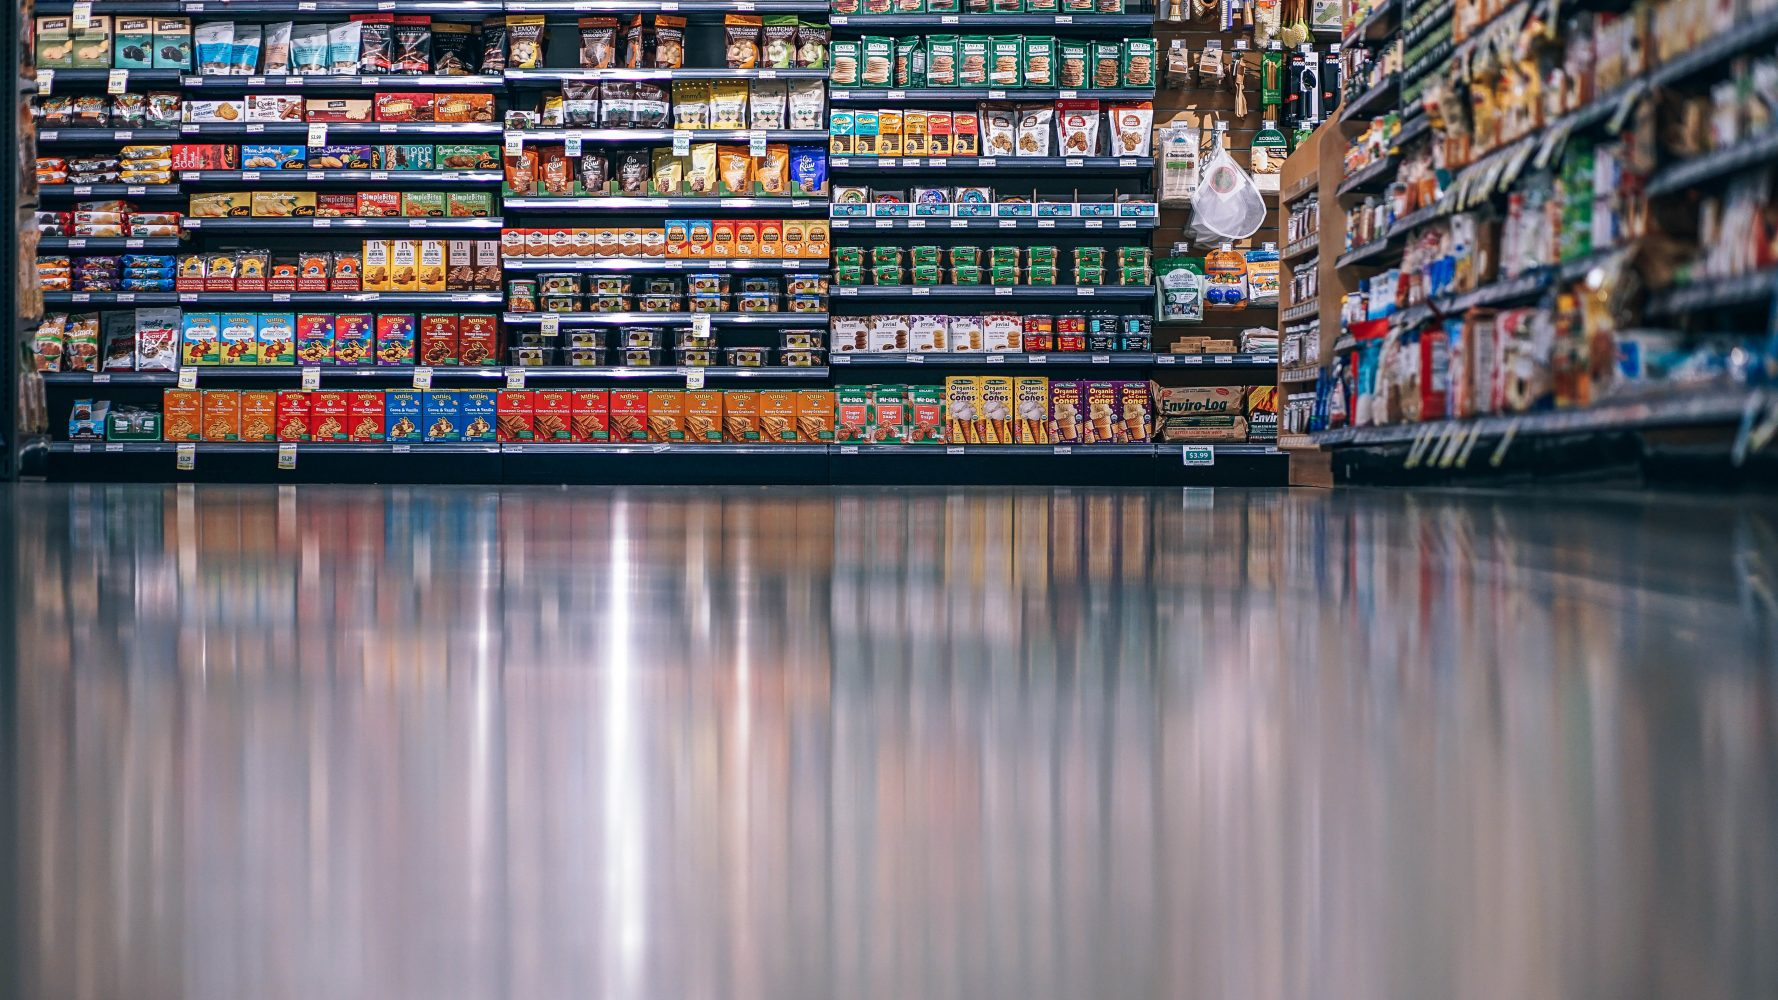 Products sitting on grocery store shelves